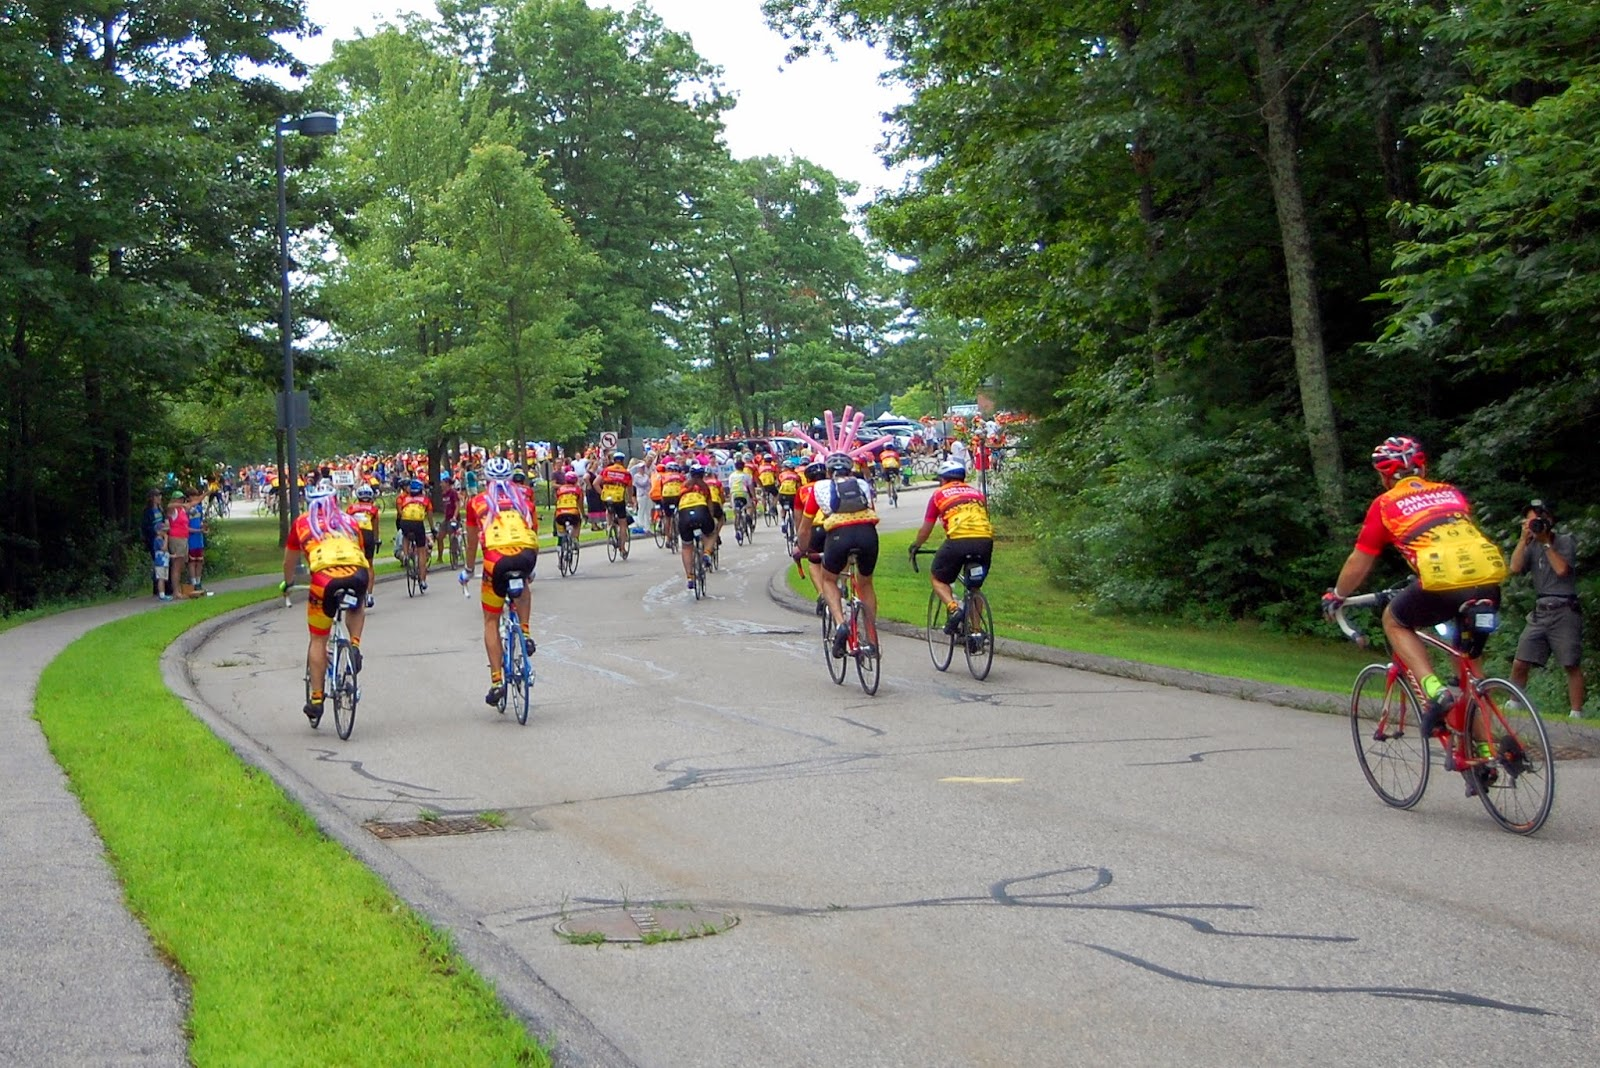 the riders arrive at Remington-Jefferson in Aug 2013